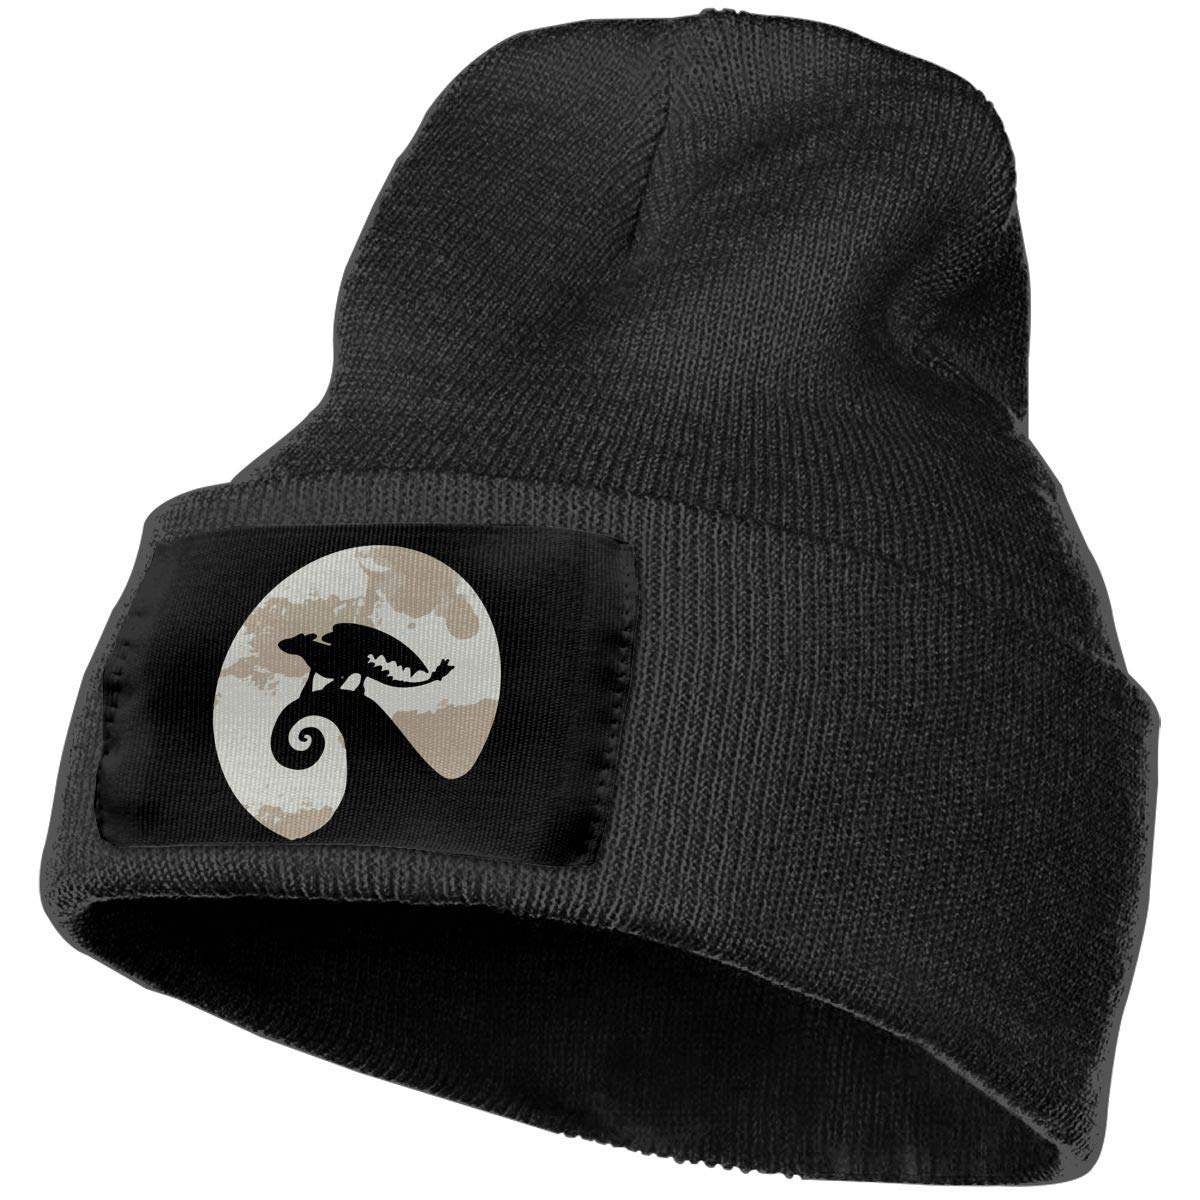 Unisex Winter Hats The Toothless Dragon Before Christmas Skull Caps Knit Hat Cap Beanie Cap for Men//Womens